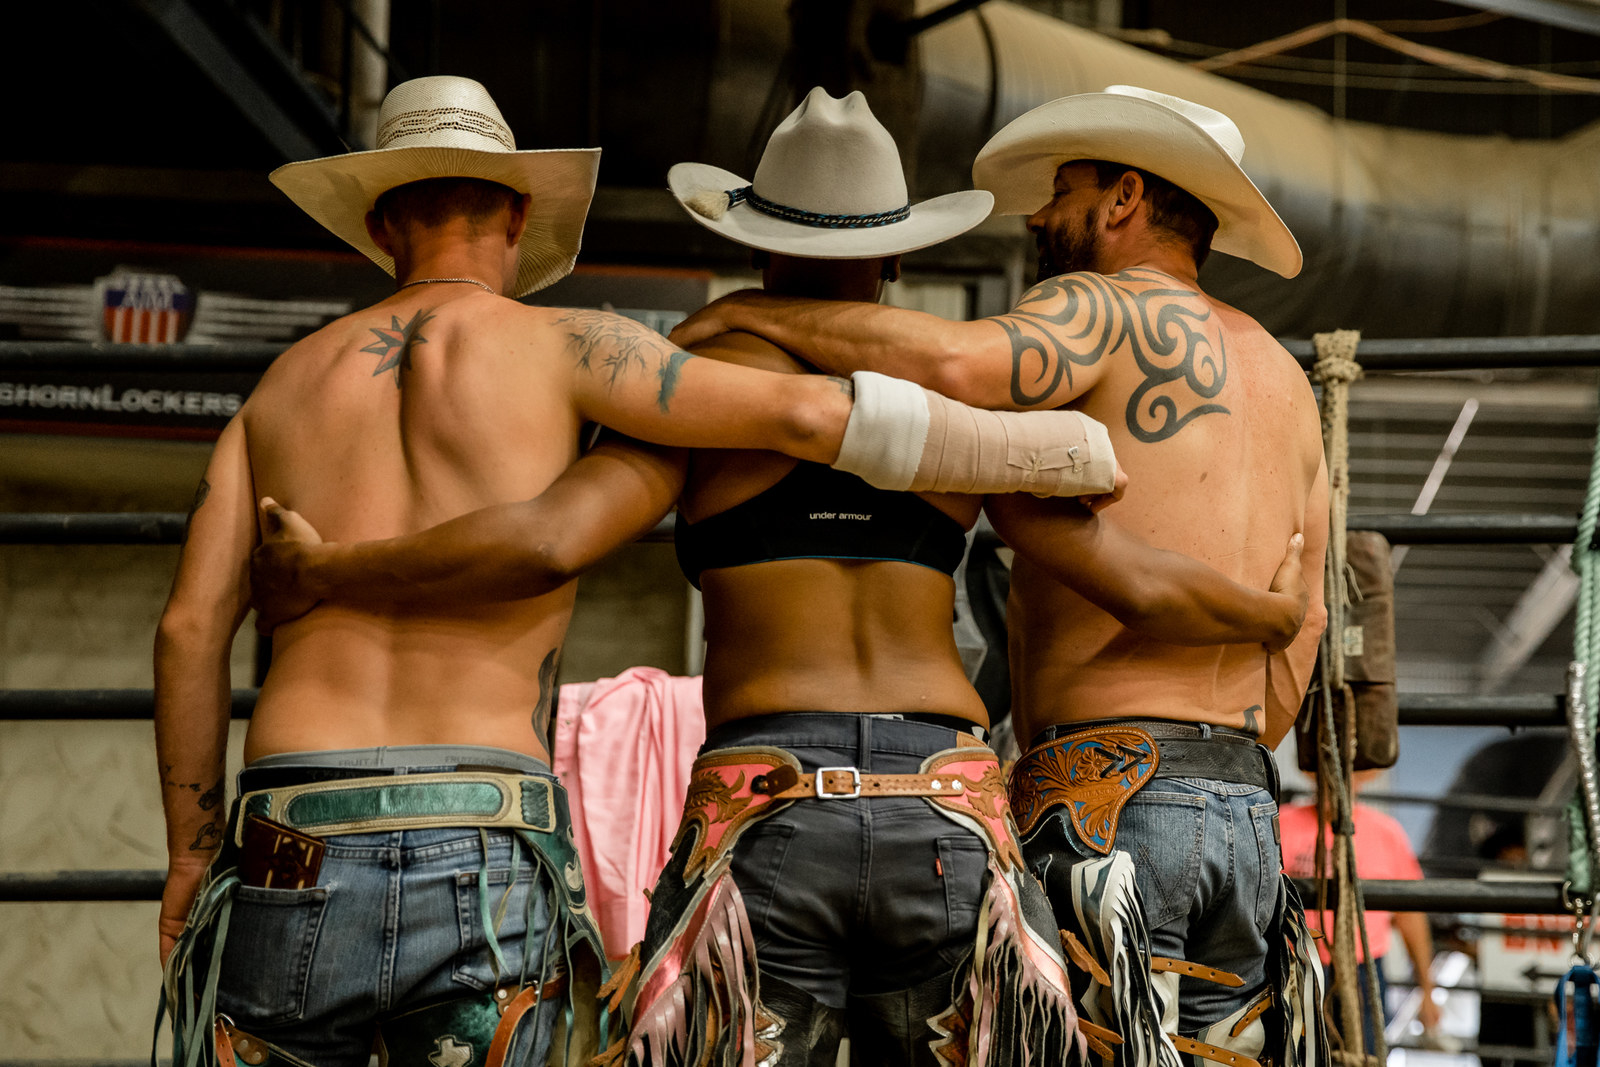 Cowboy Dreams (Cowboy,gay)